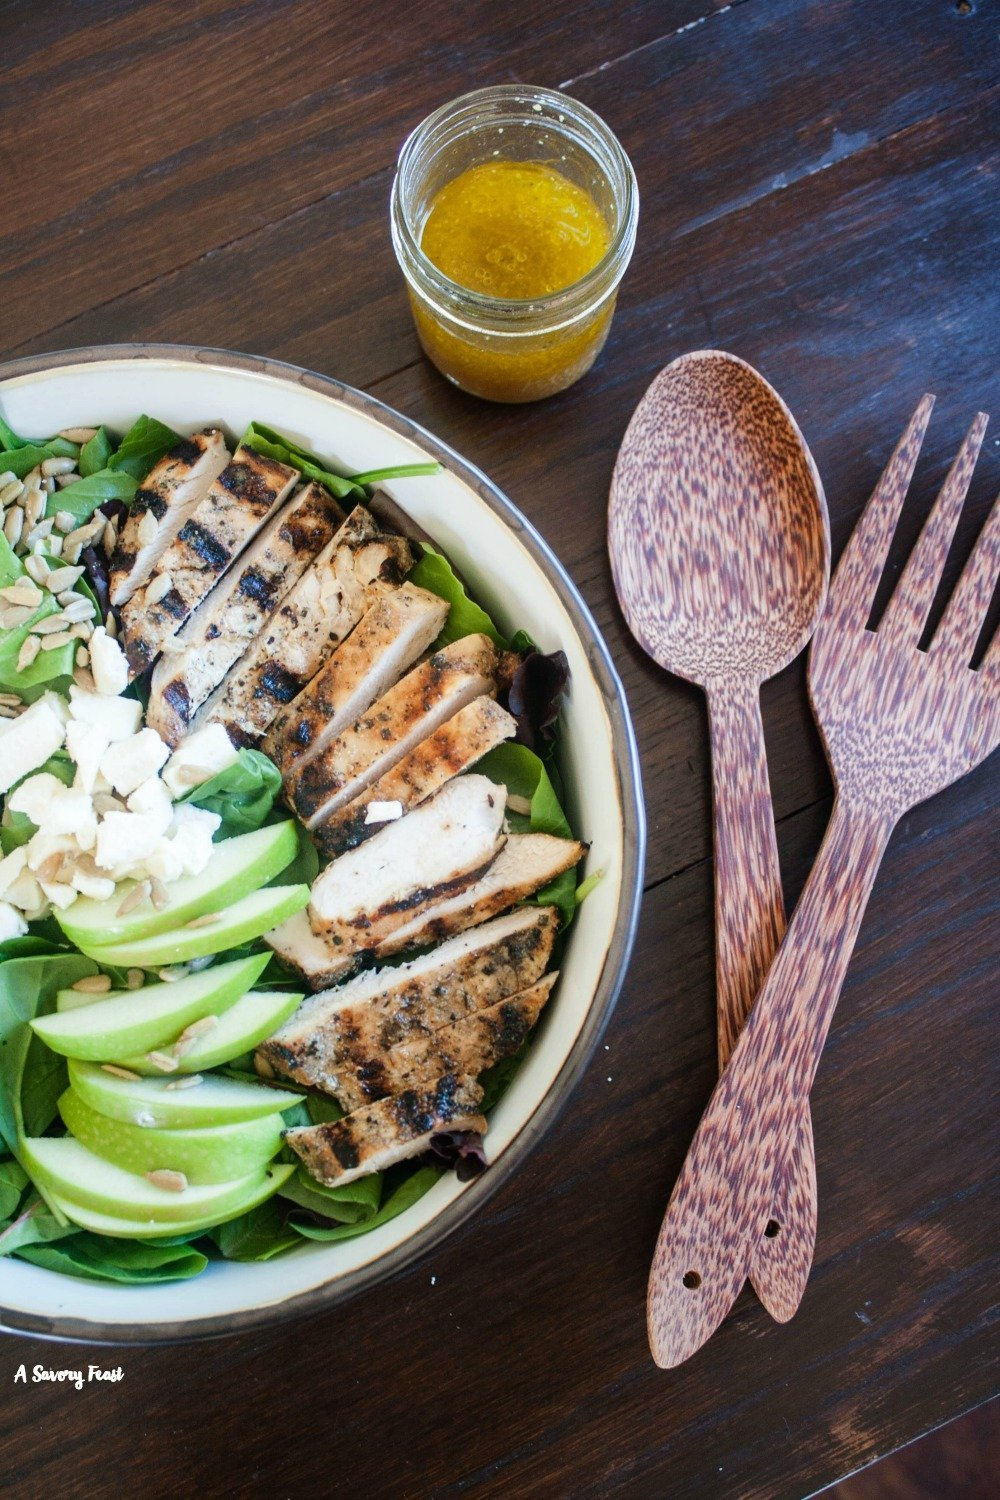 Make this fresh, flavorful Fall salad for dinner tonight! Grilled Chicken and Apple Salad is a snap to throw together and features a homemade apple vinaigrette dressing.